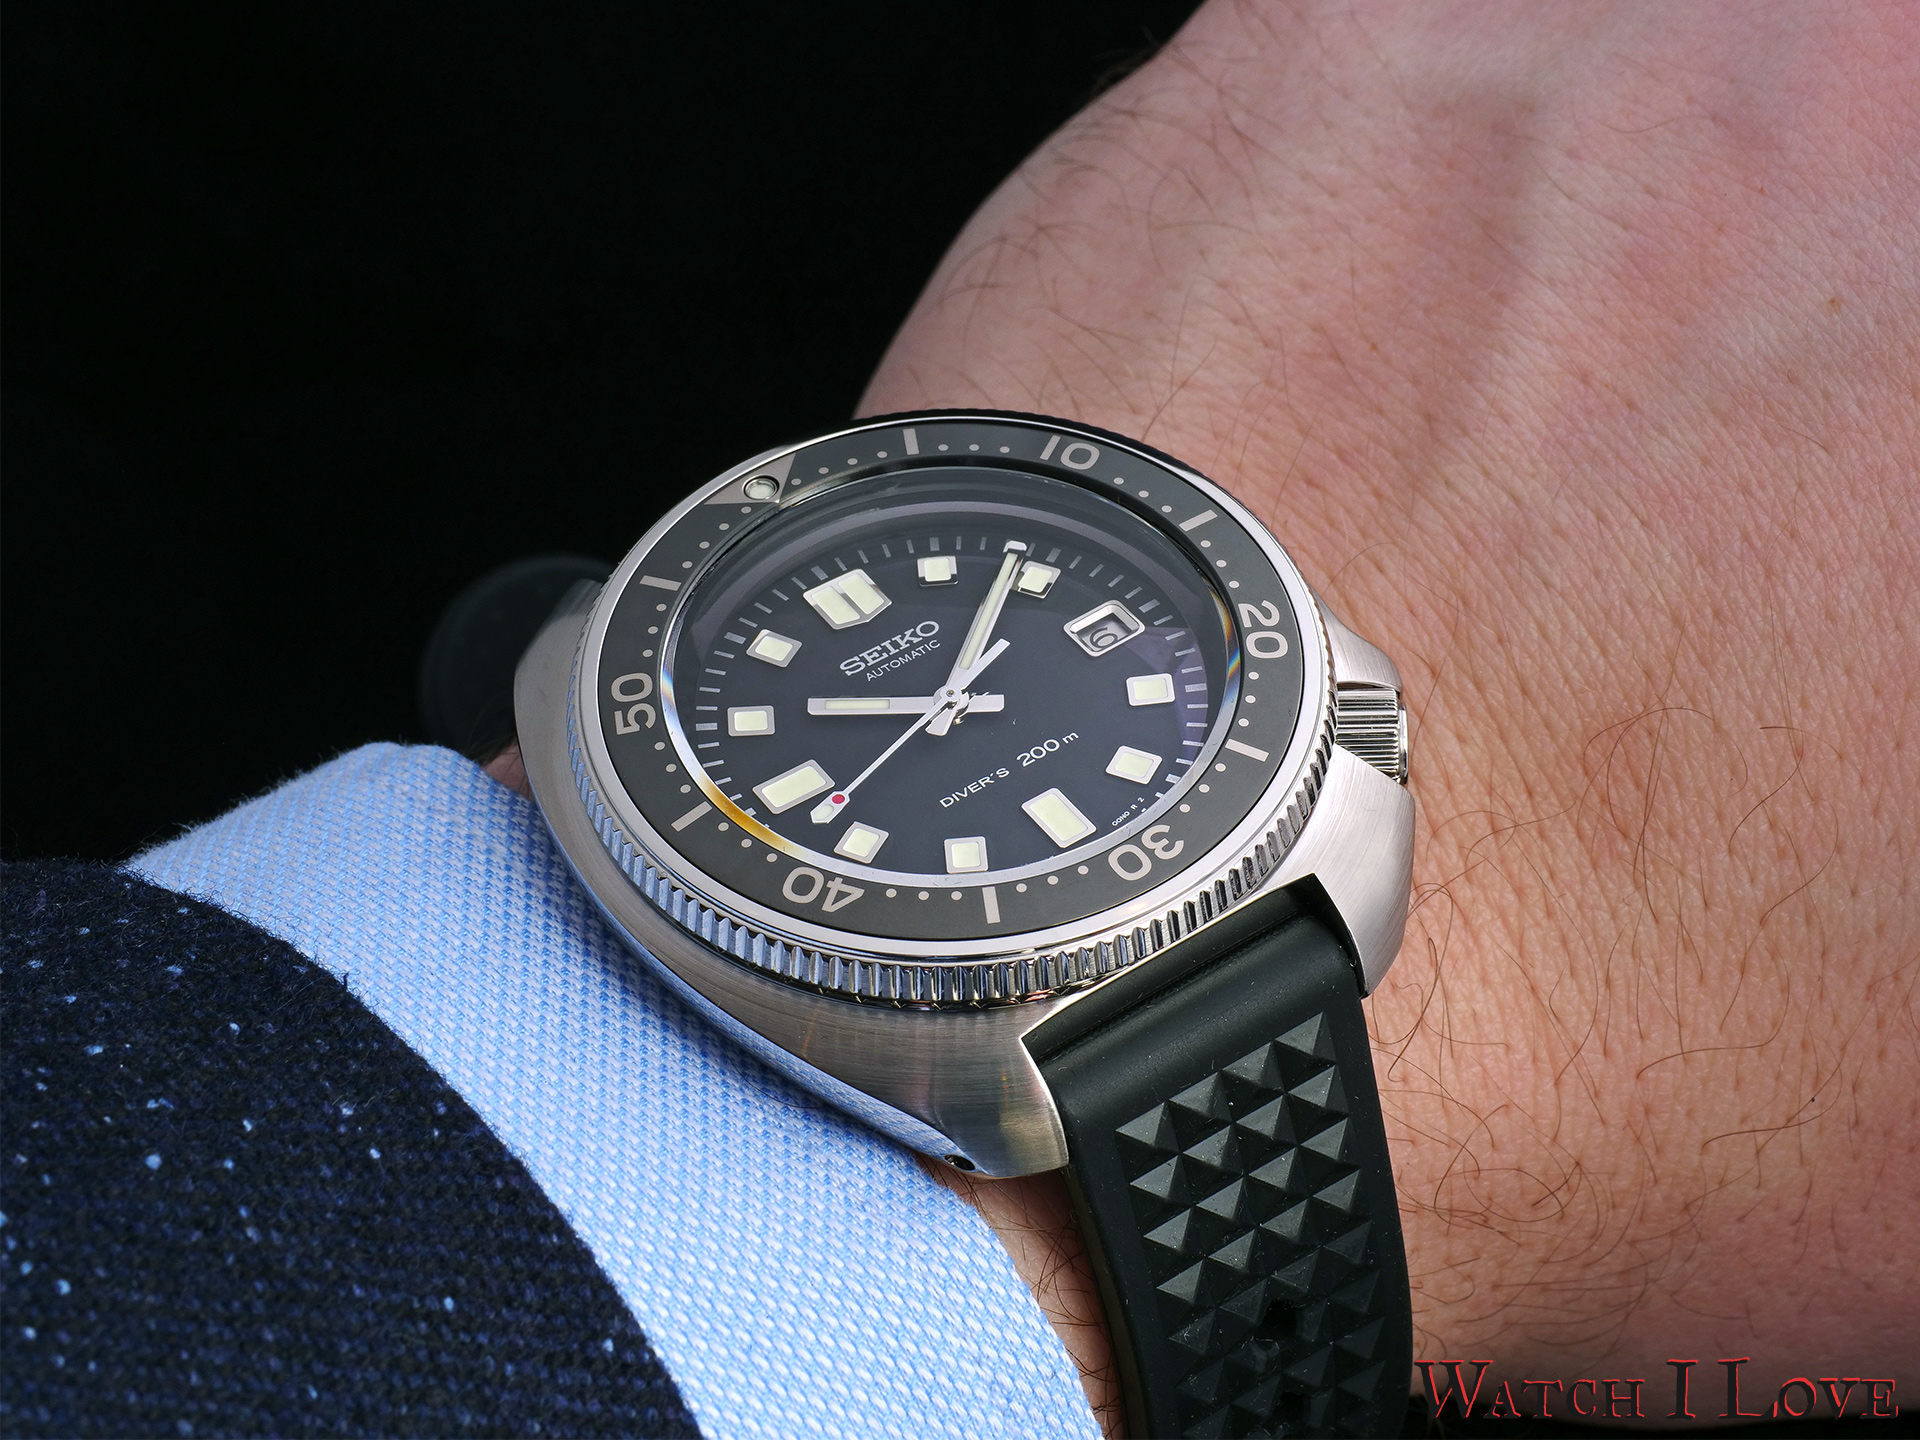 The Seiko SLA033J1 on the wrist